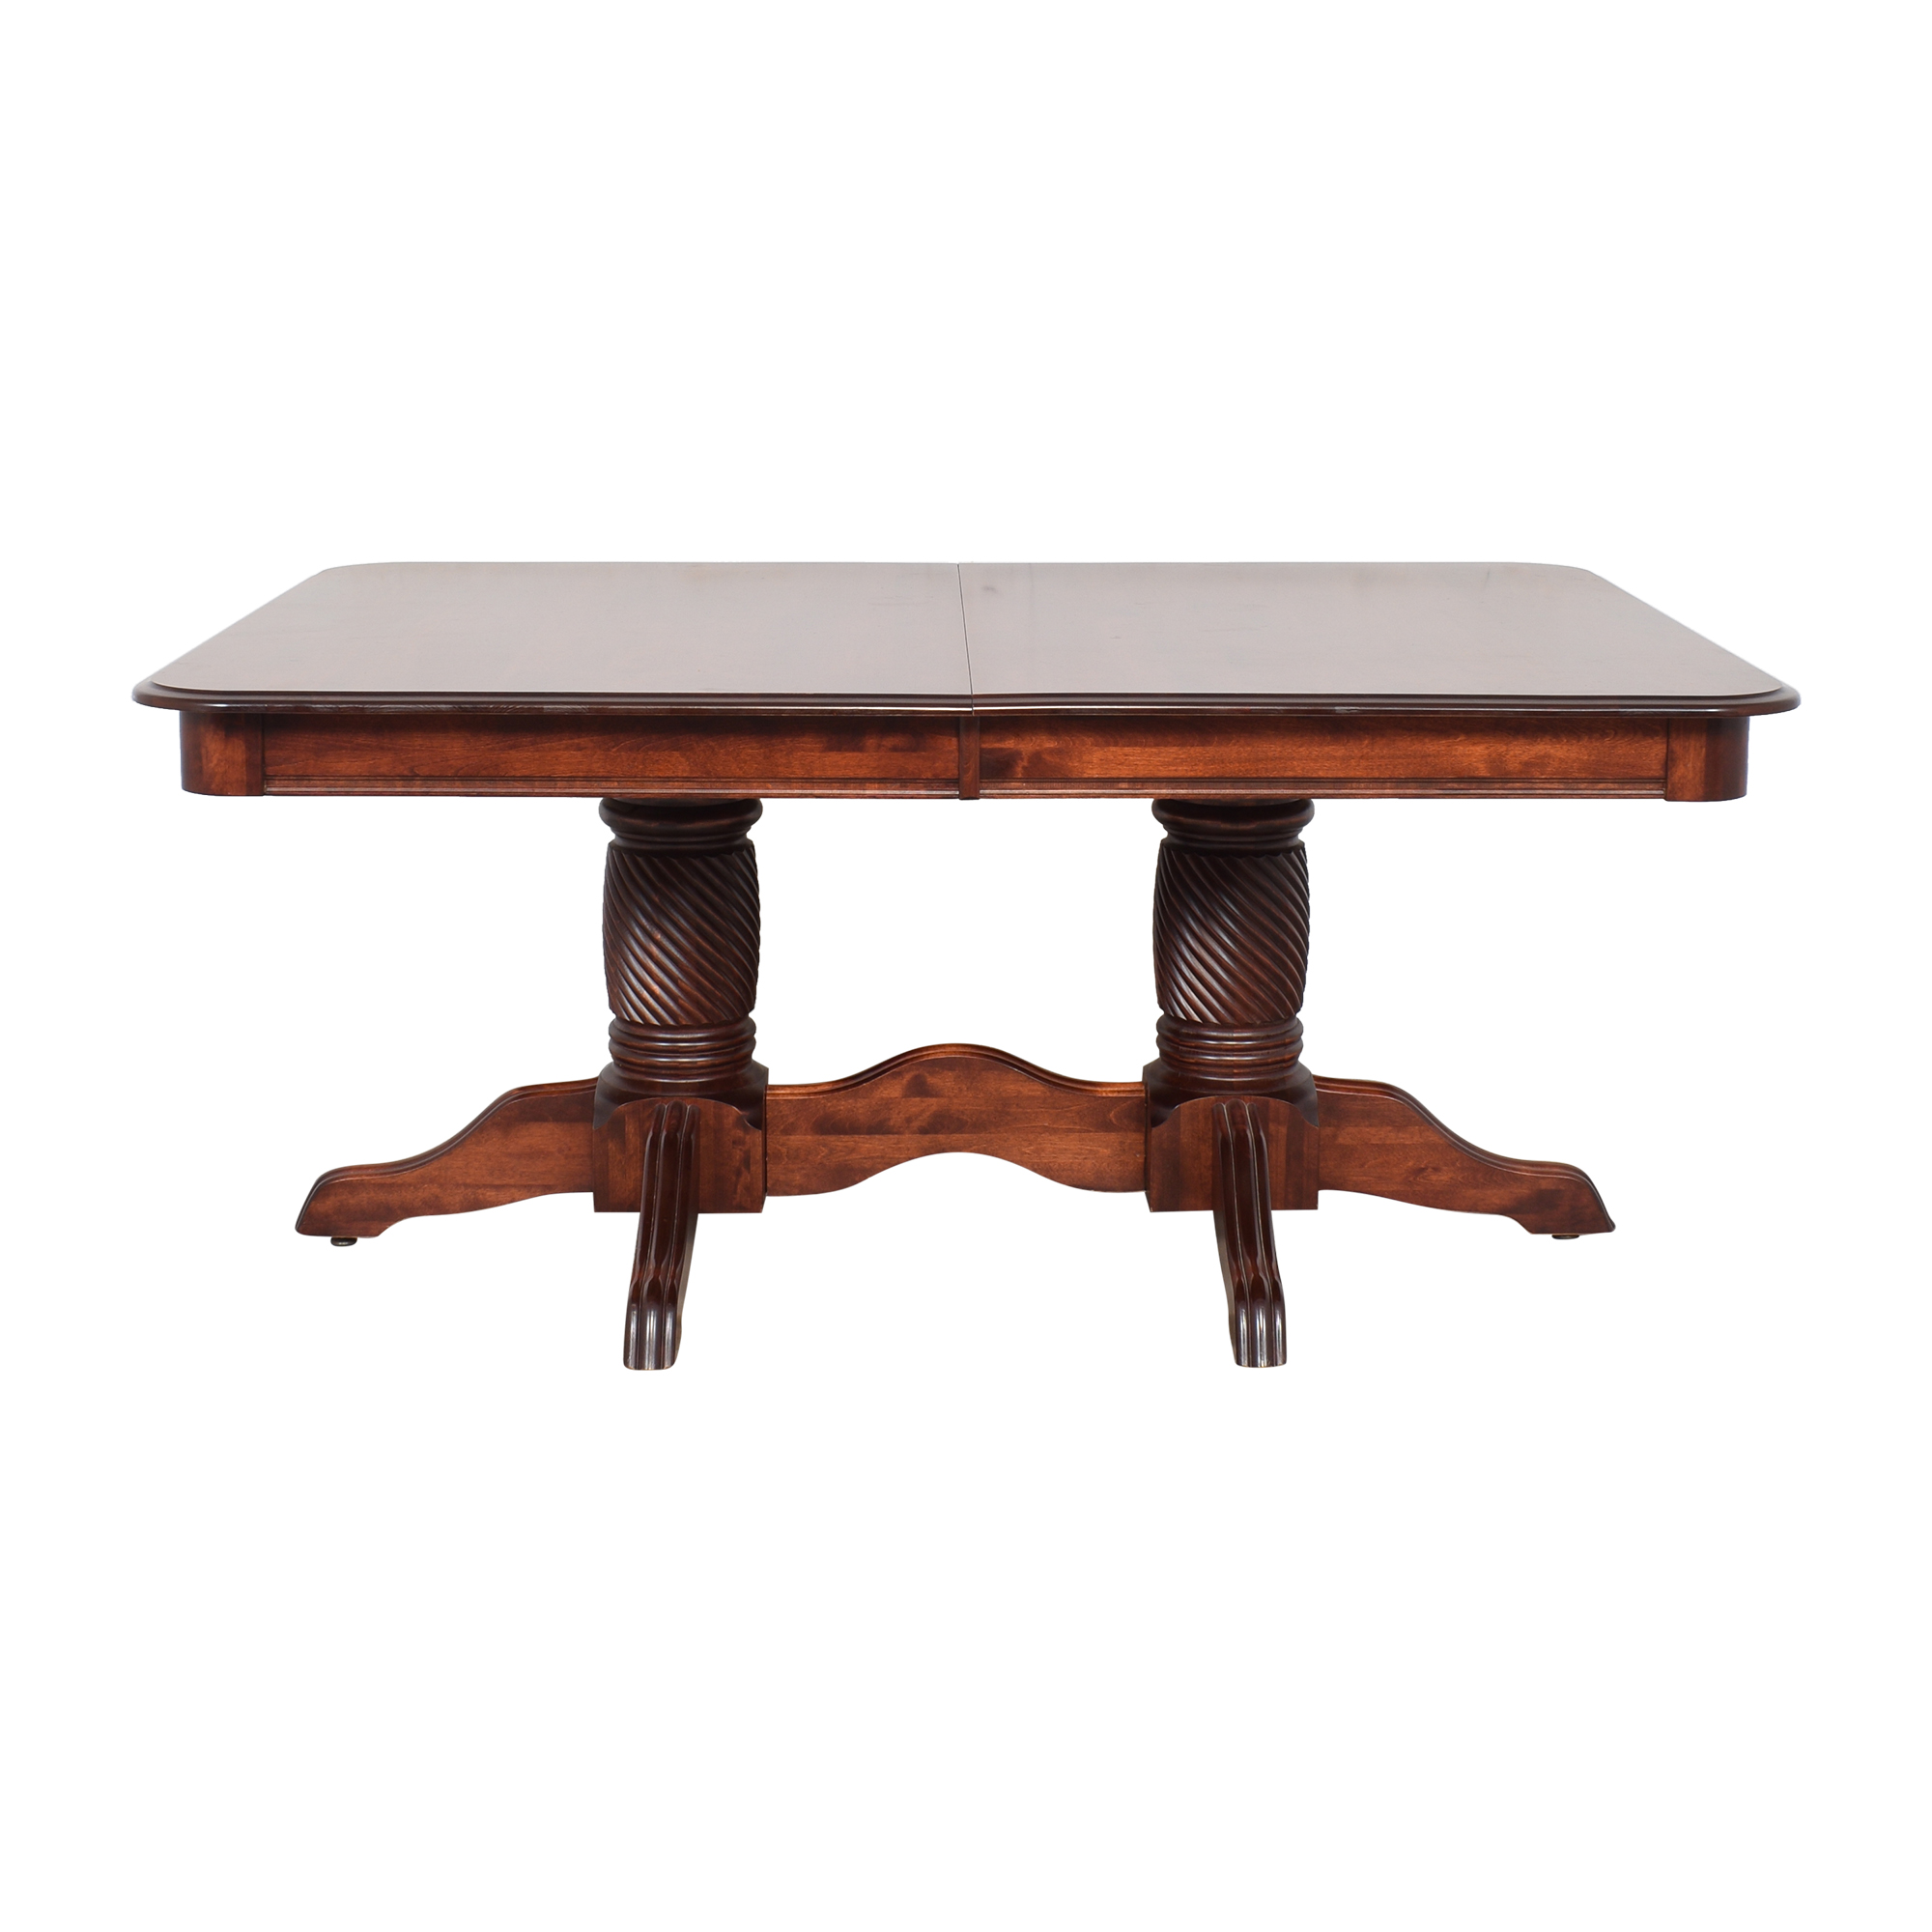 buy Canadel Canadel Double Pedestal Extendable Dining Table online